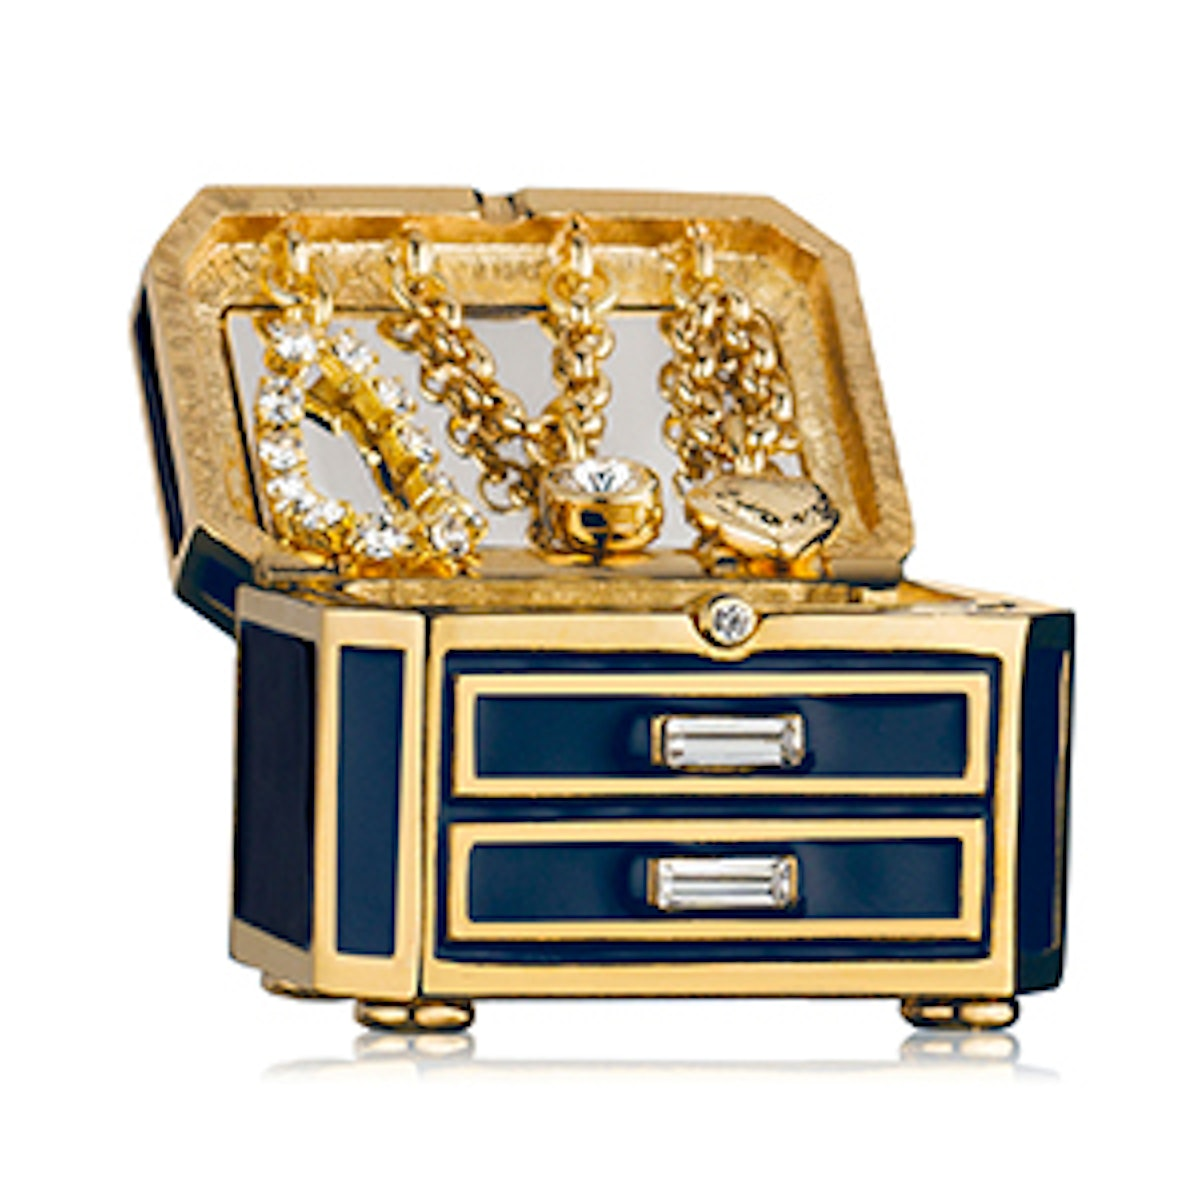 Limited Edition Precious Jewels Perfume Compact